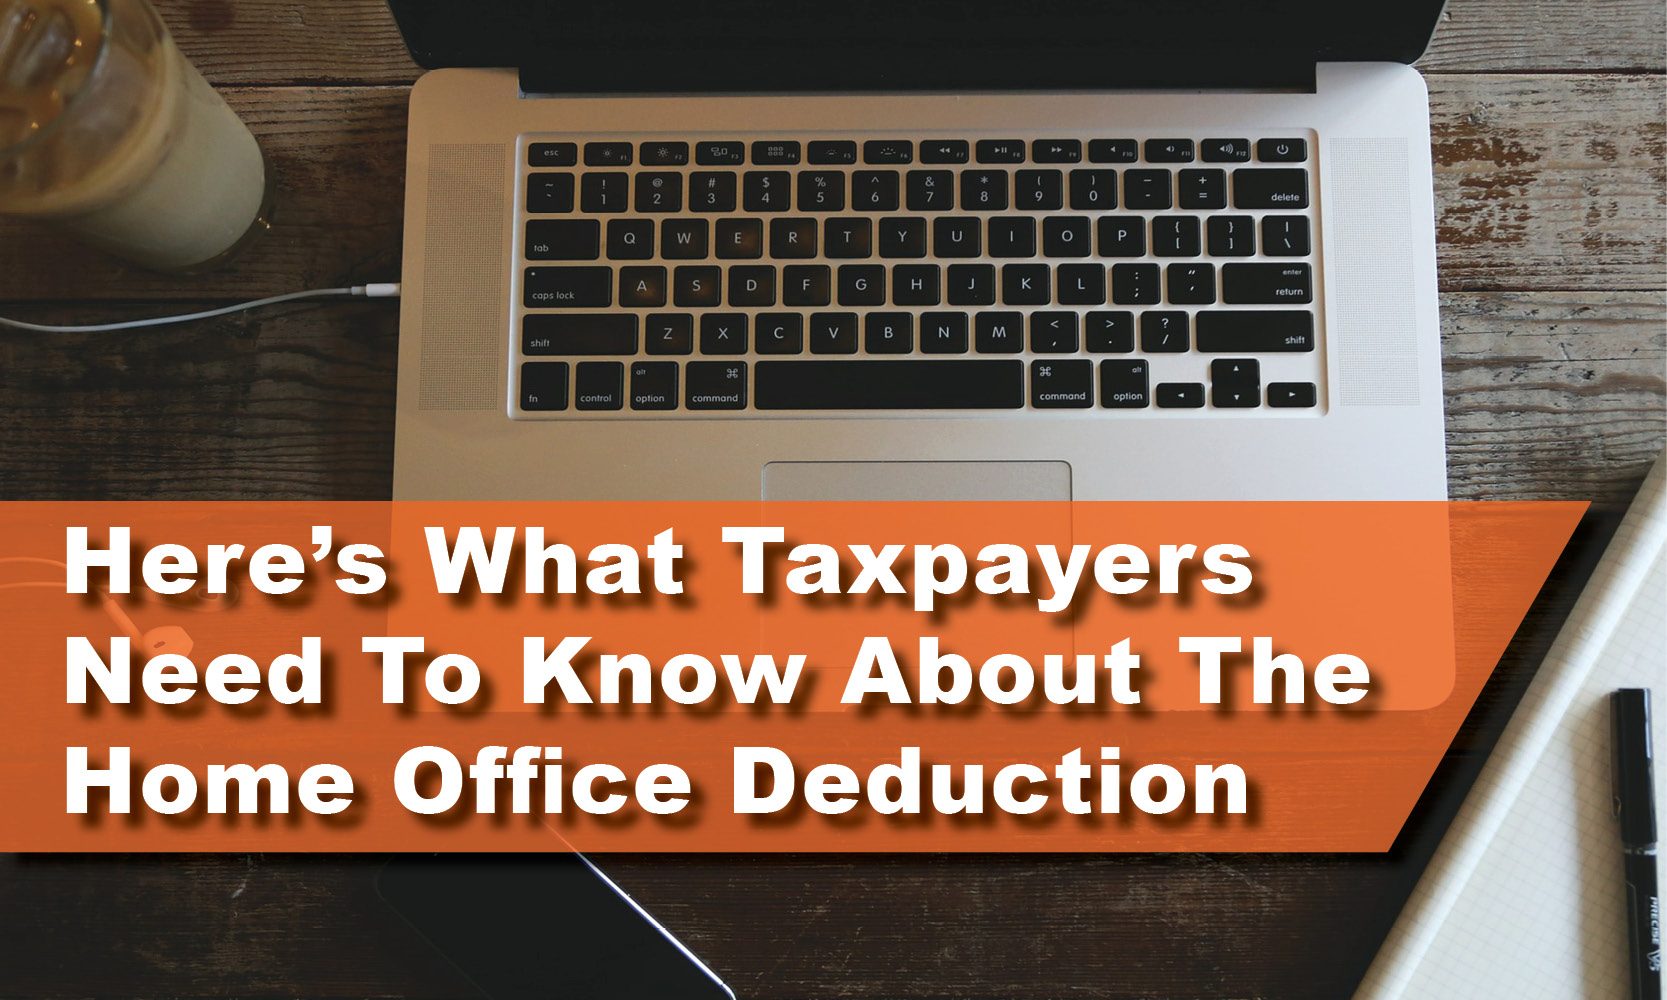 Here's What Taxpayers Need to Know About the Home Office Deduction